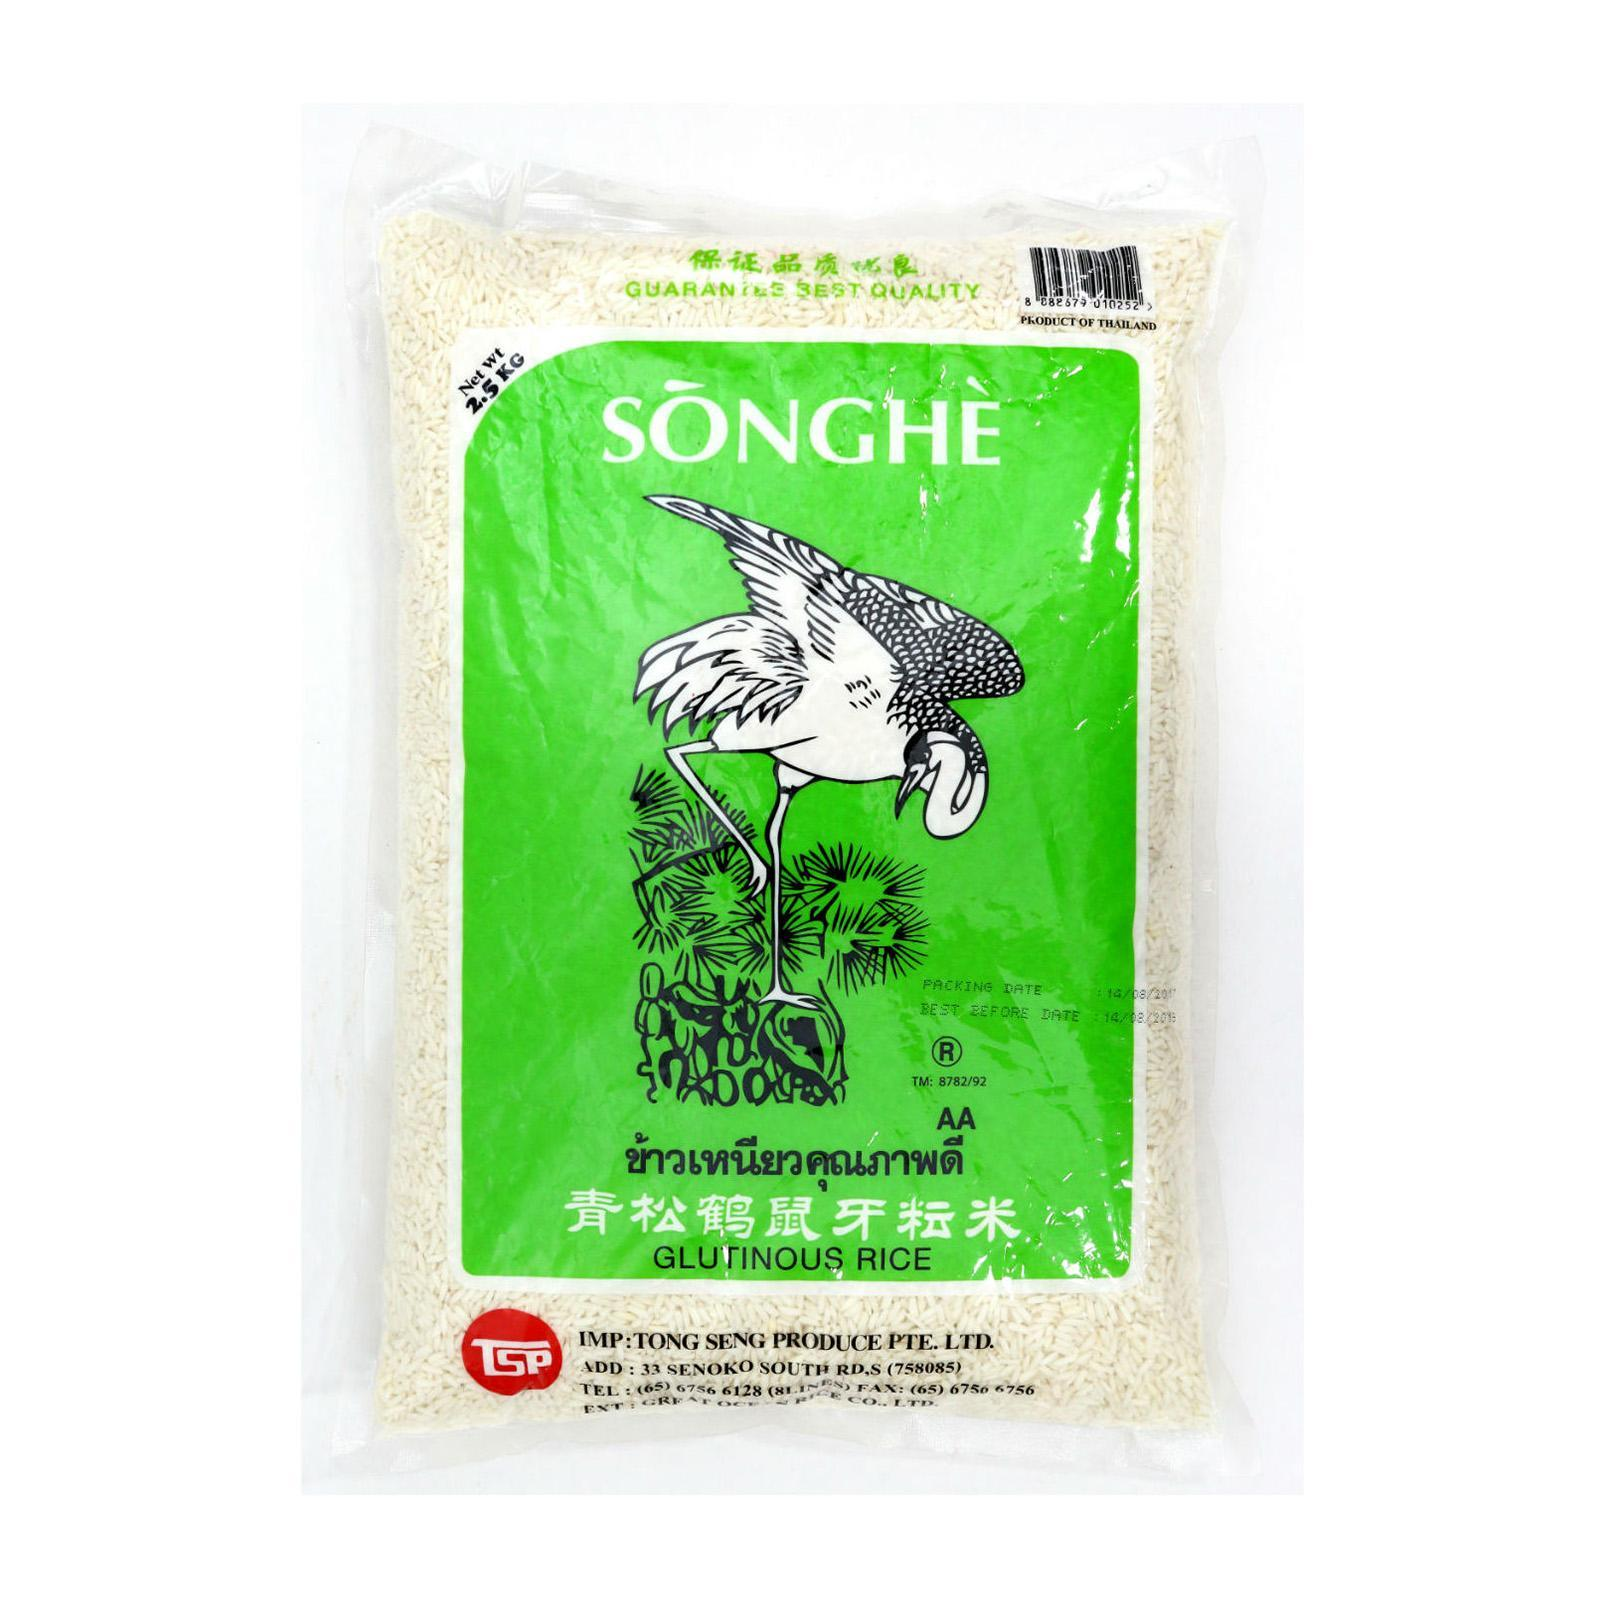 SongHe Glutinous Rice 2.5Kg - By The Rice Shop